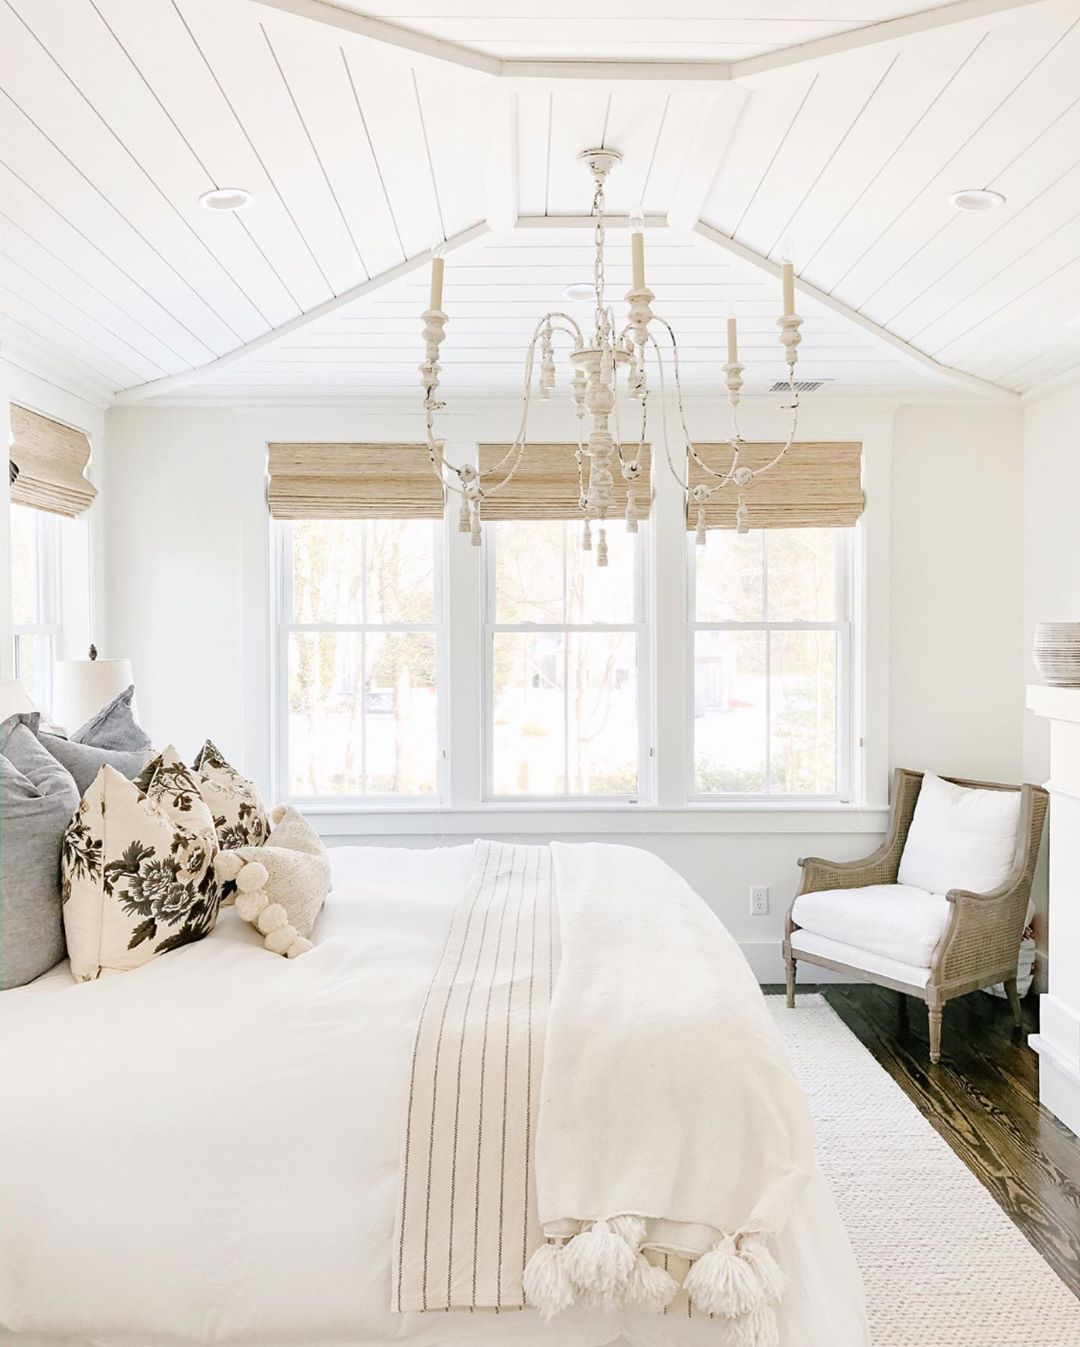 Bedroom with white and tan color palette